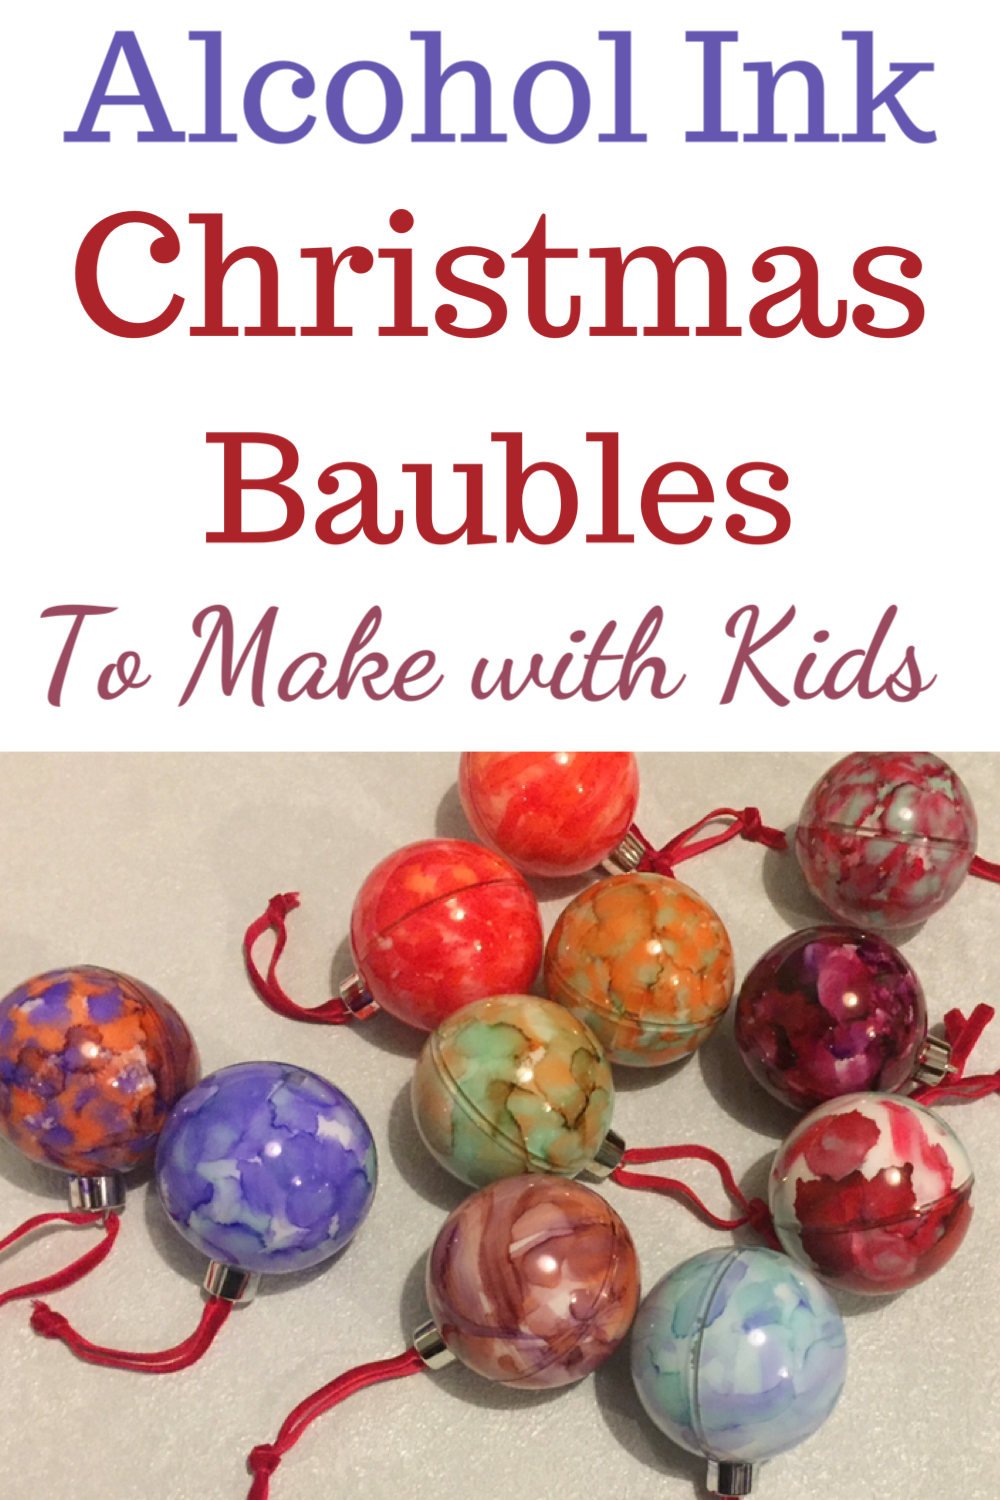 Alcohol ink Christmas baubles to make with kids